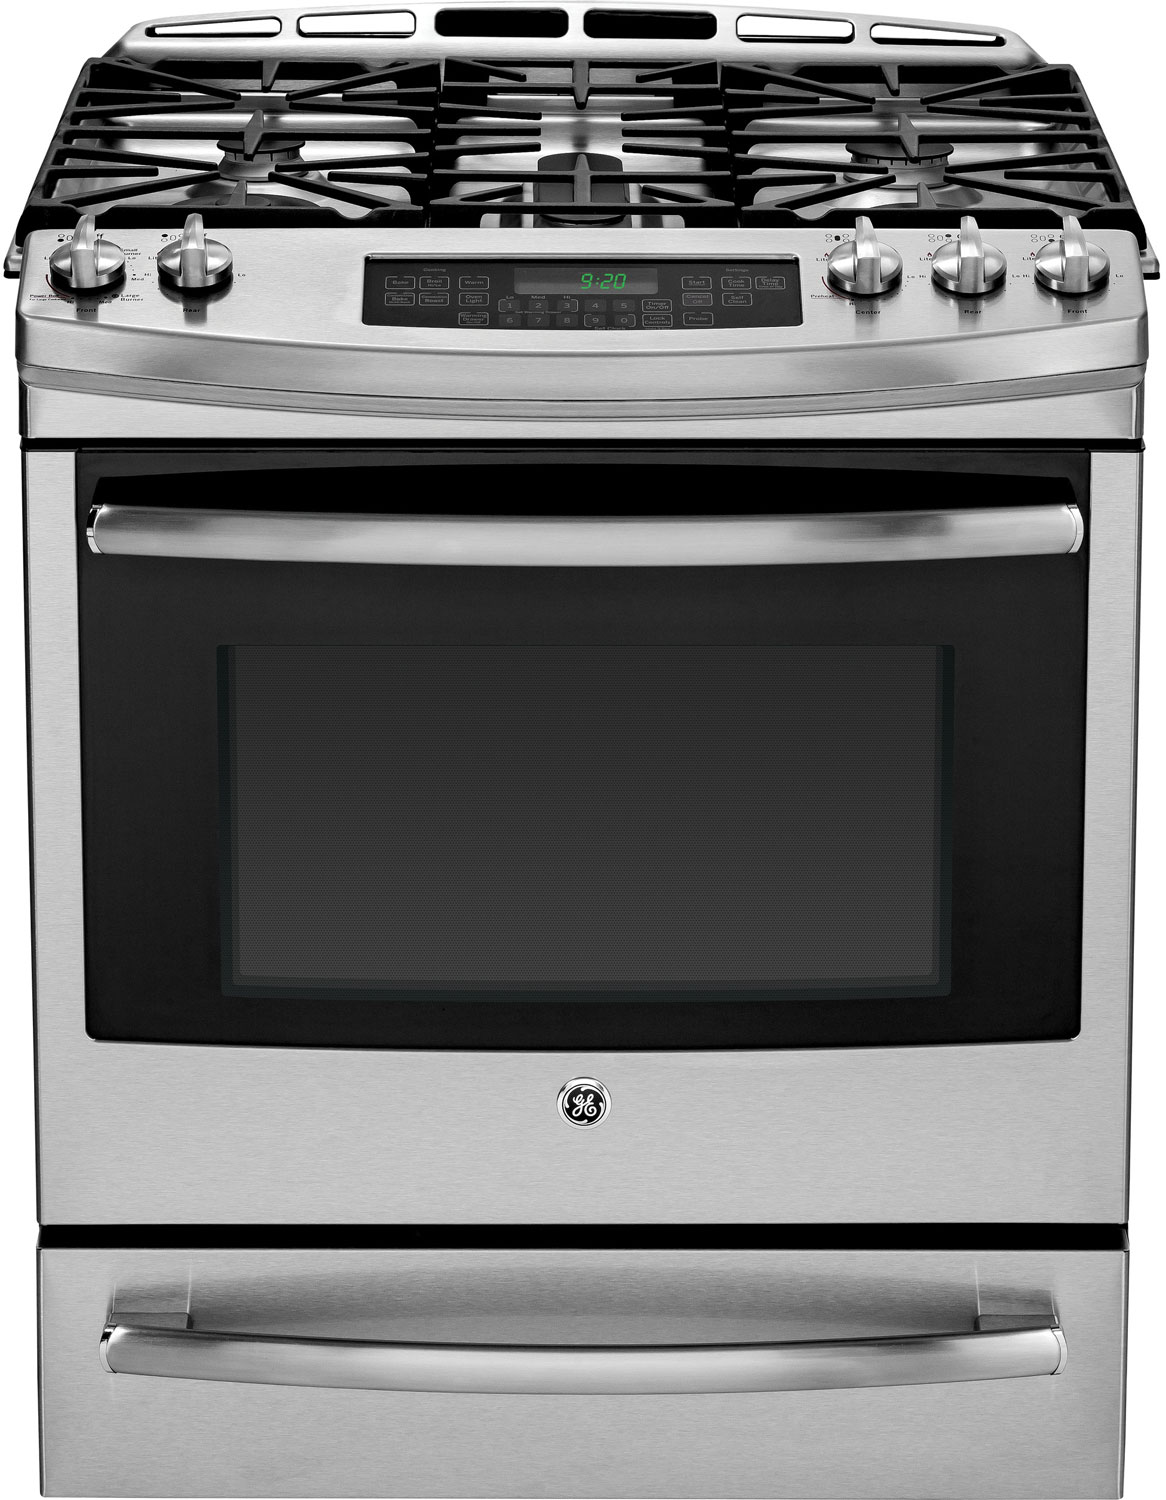 "GE Profile 30"" Stainless Steel Dual-Fuel Slide-In Range"